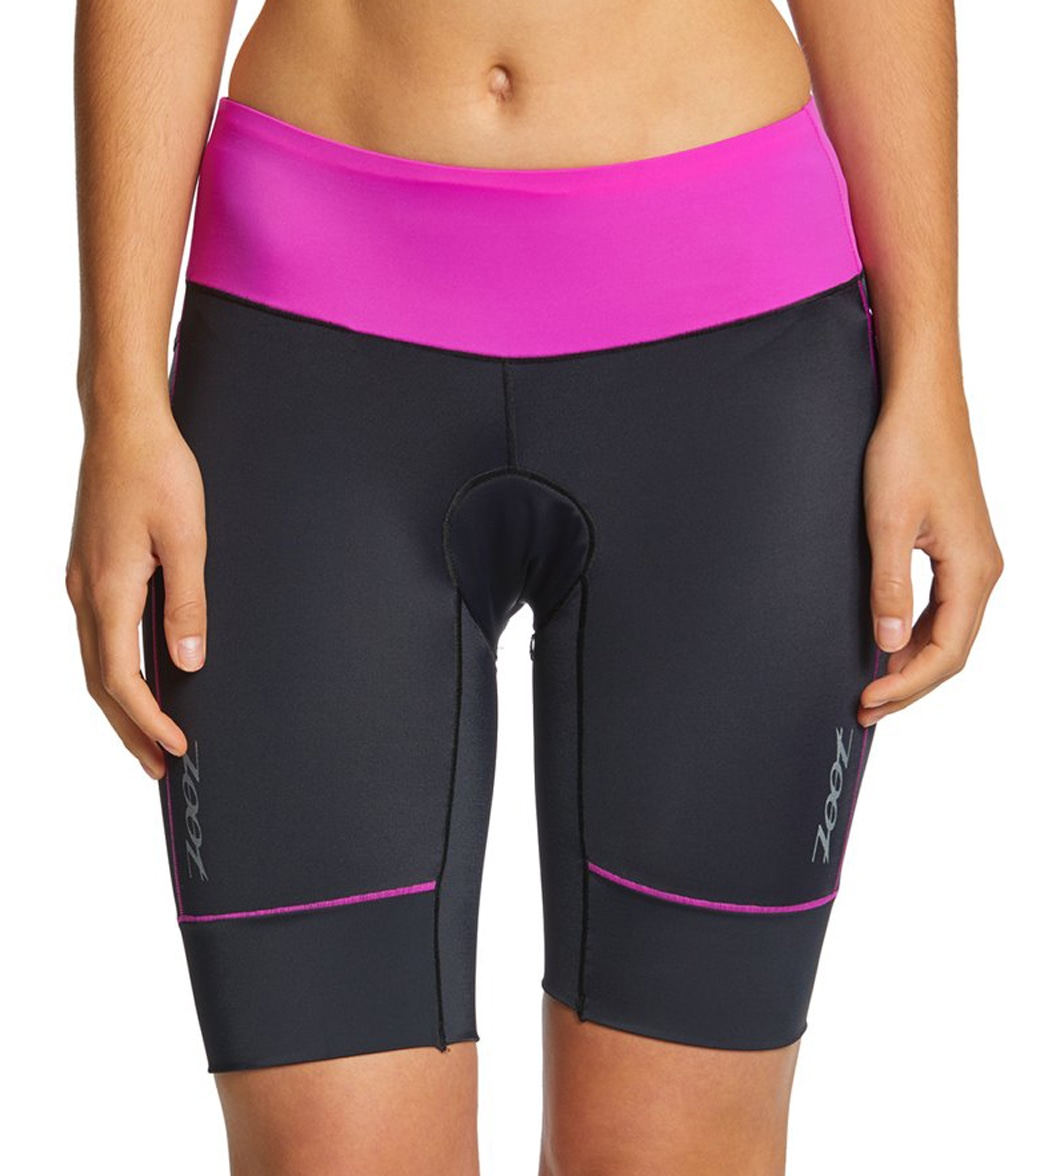 879a906e3 Zoot Women s Core Tri 8 Inch Short at SwimOutlet.com - Free Shipping